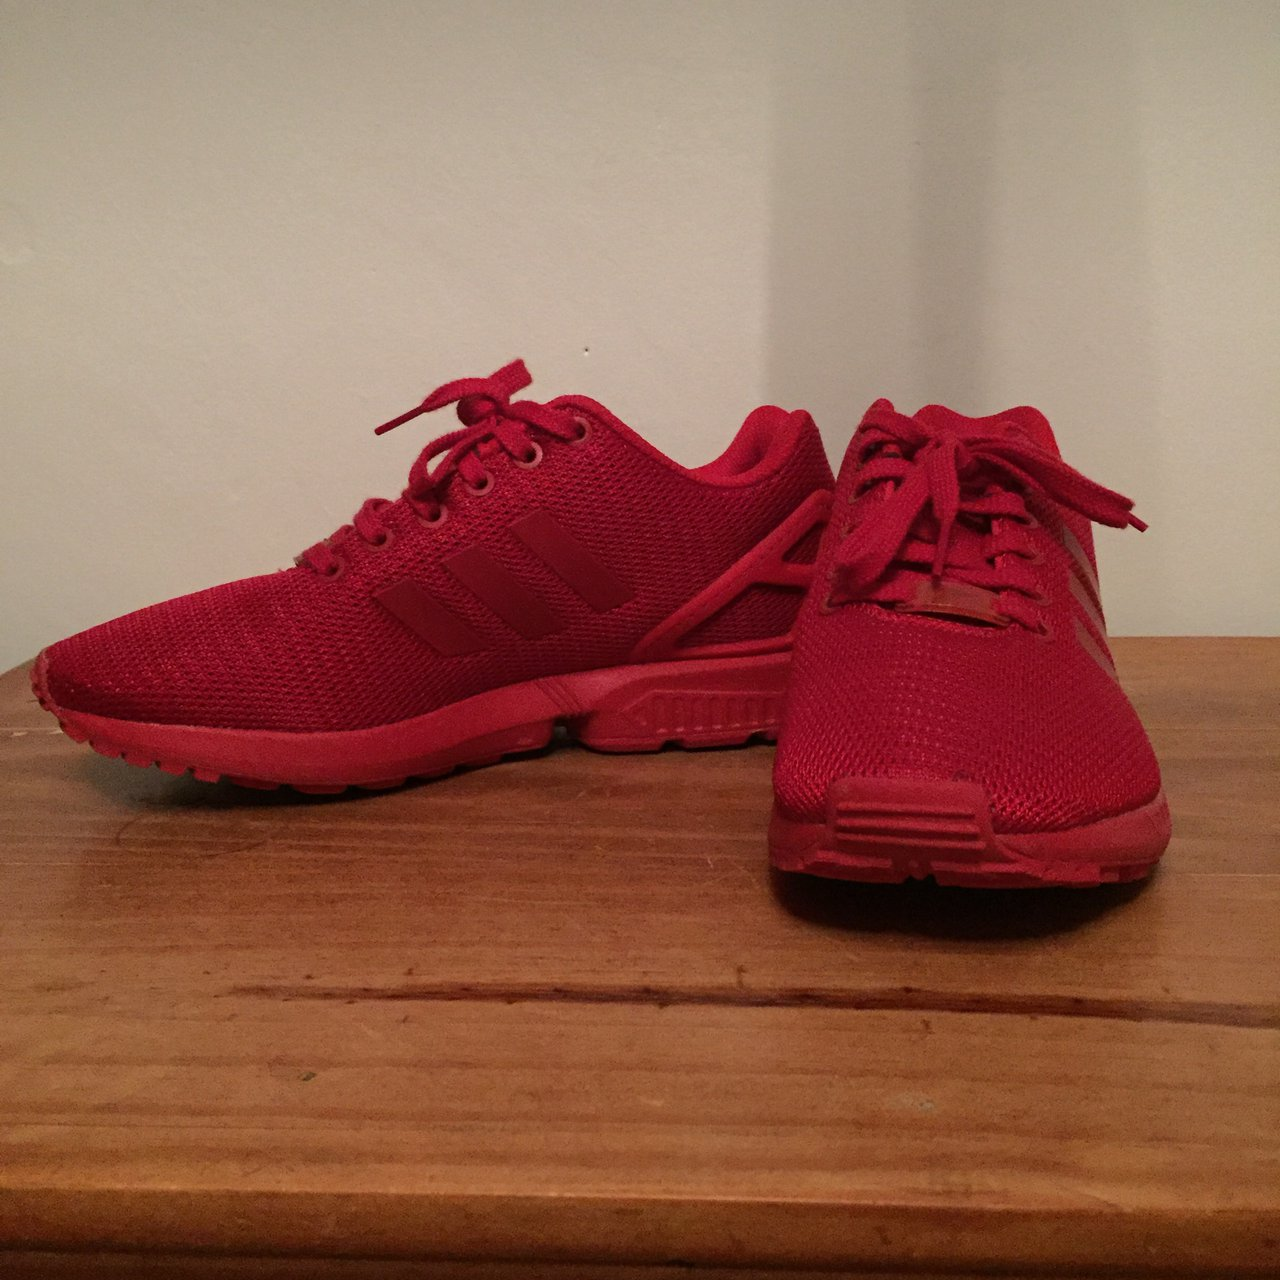 7b49ee666d419 ... shop unisex nearly new red adidas zx flux mens size 7 worn so depop  b6918 c644a